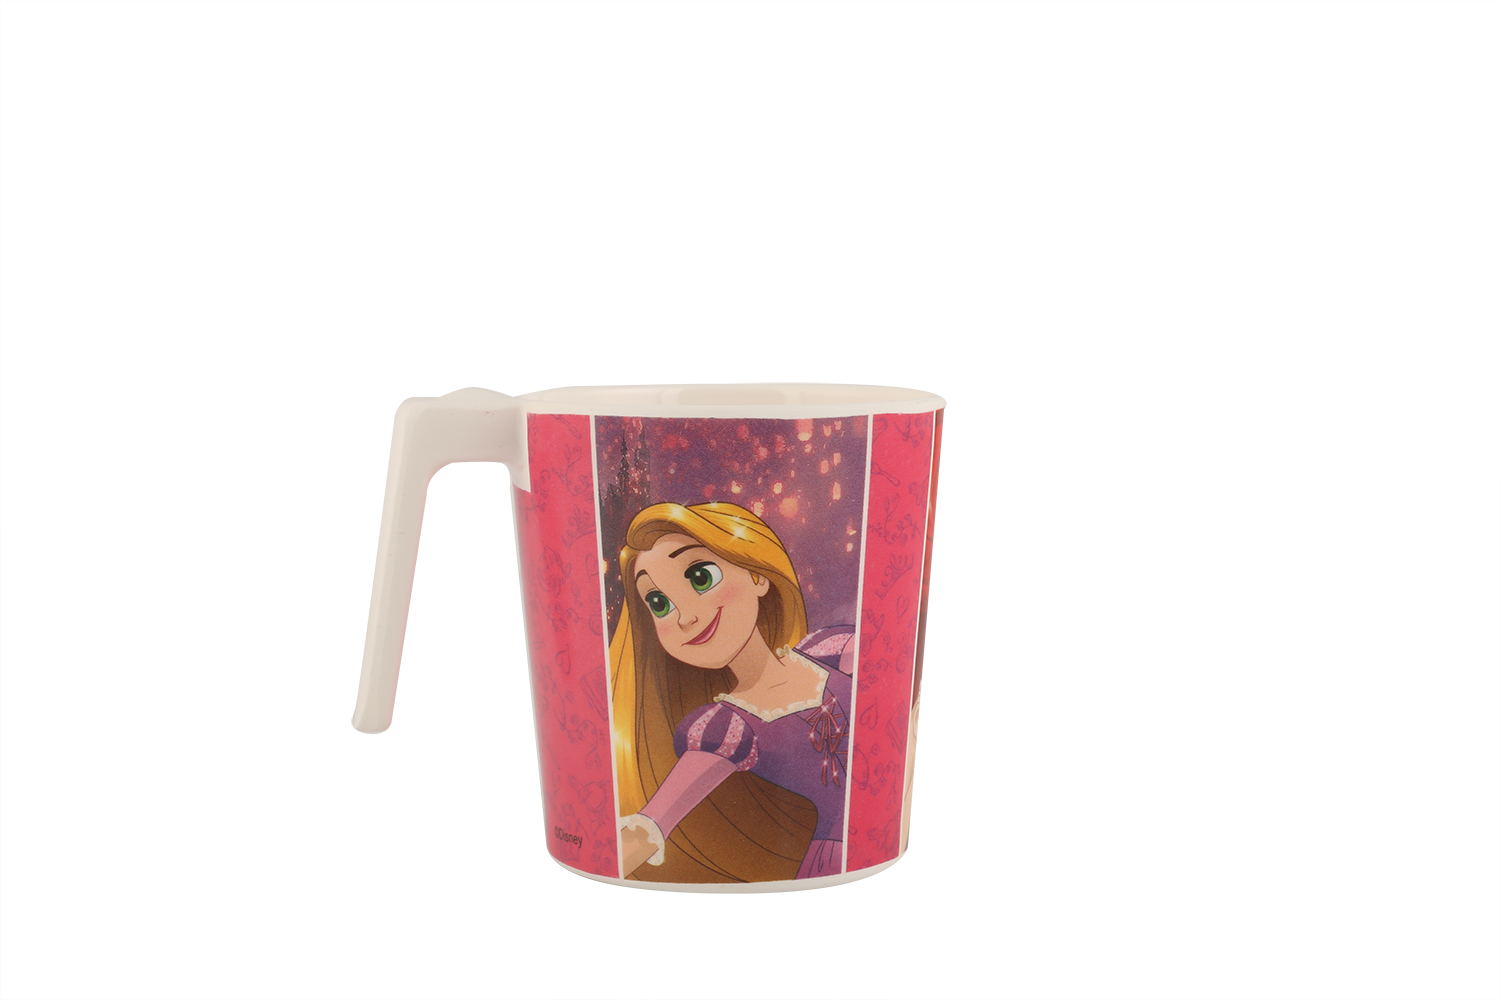 SW Mug Large Princess Glasses & Tumblers in Multicolor Colour by Servewell